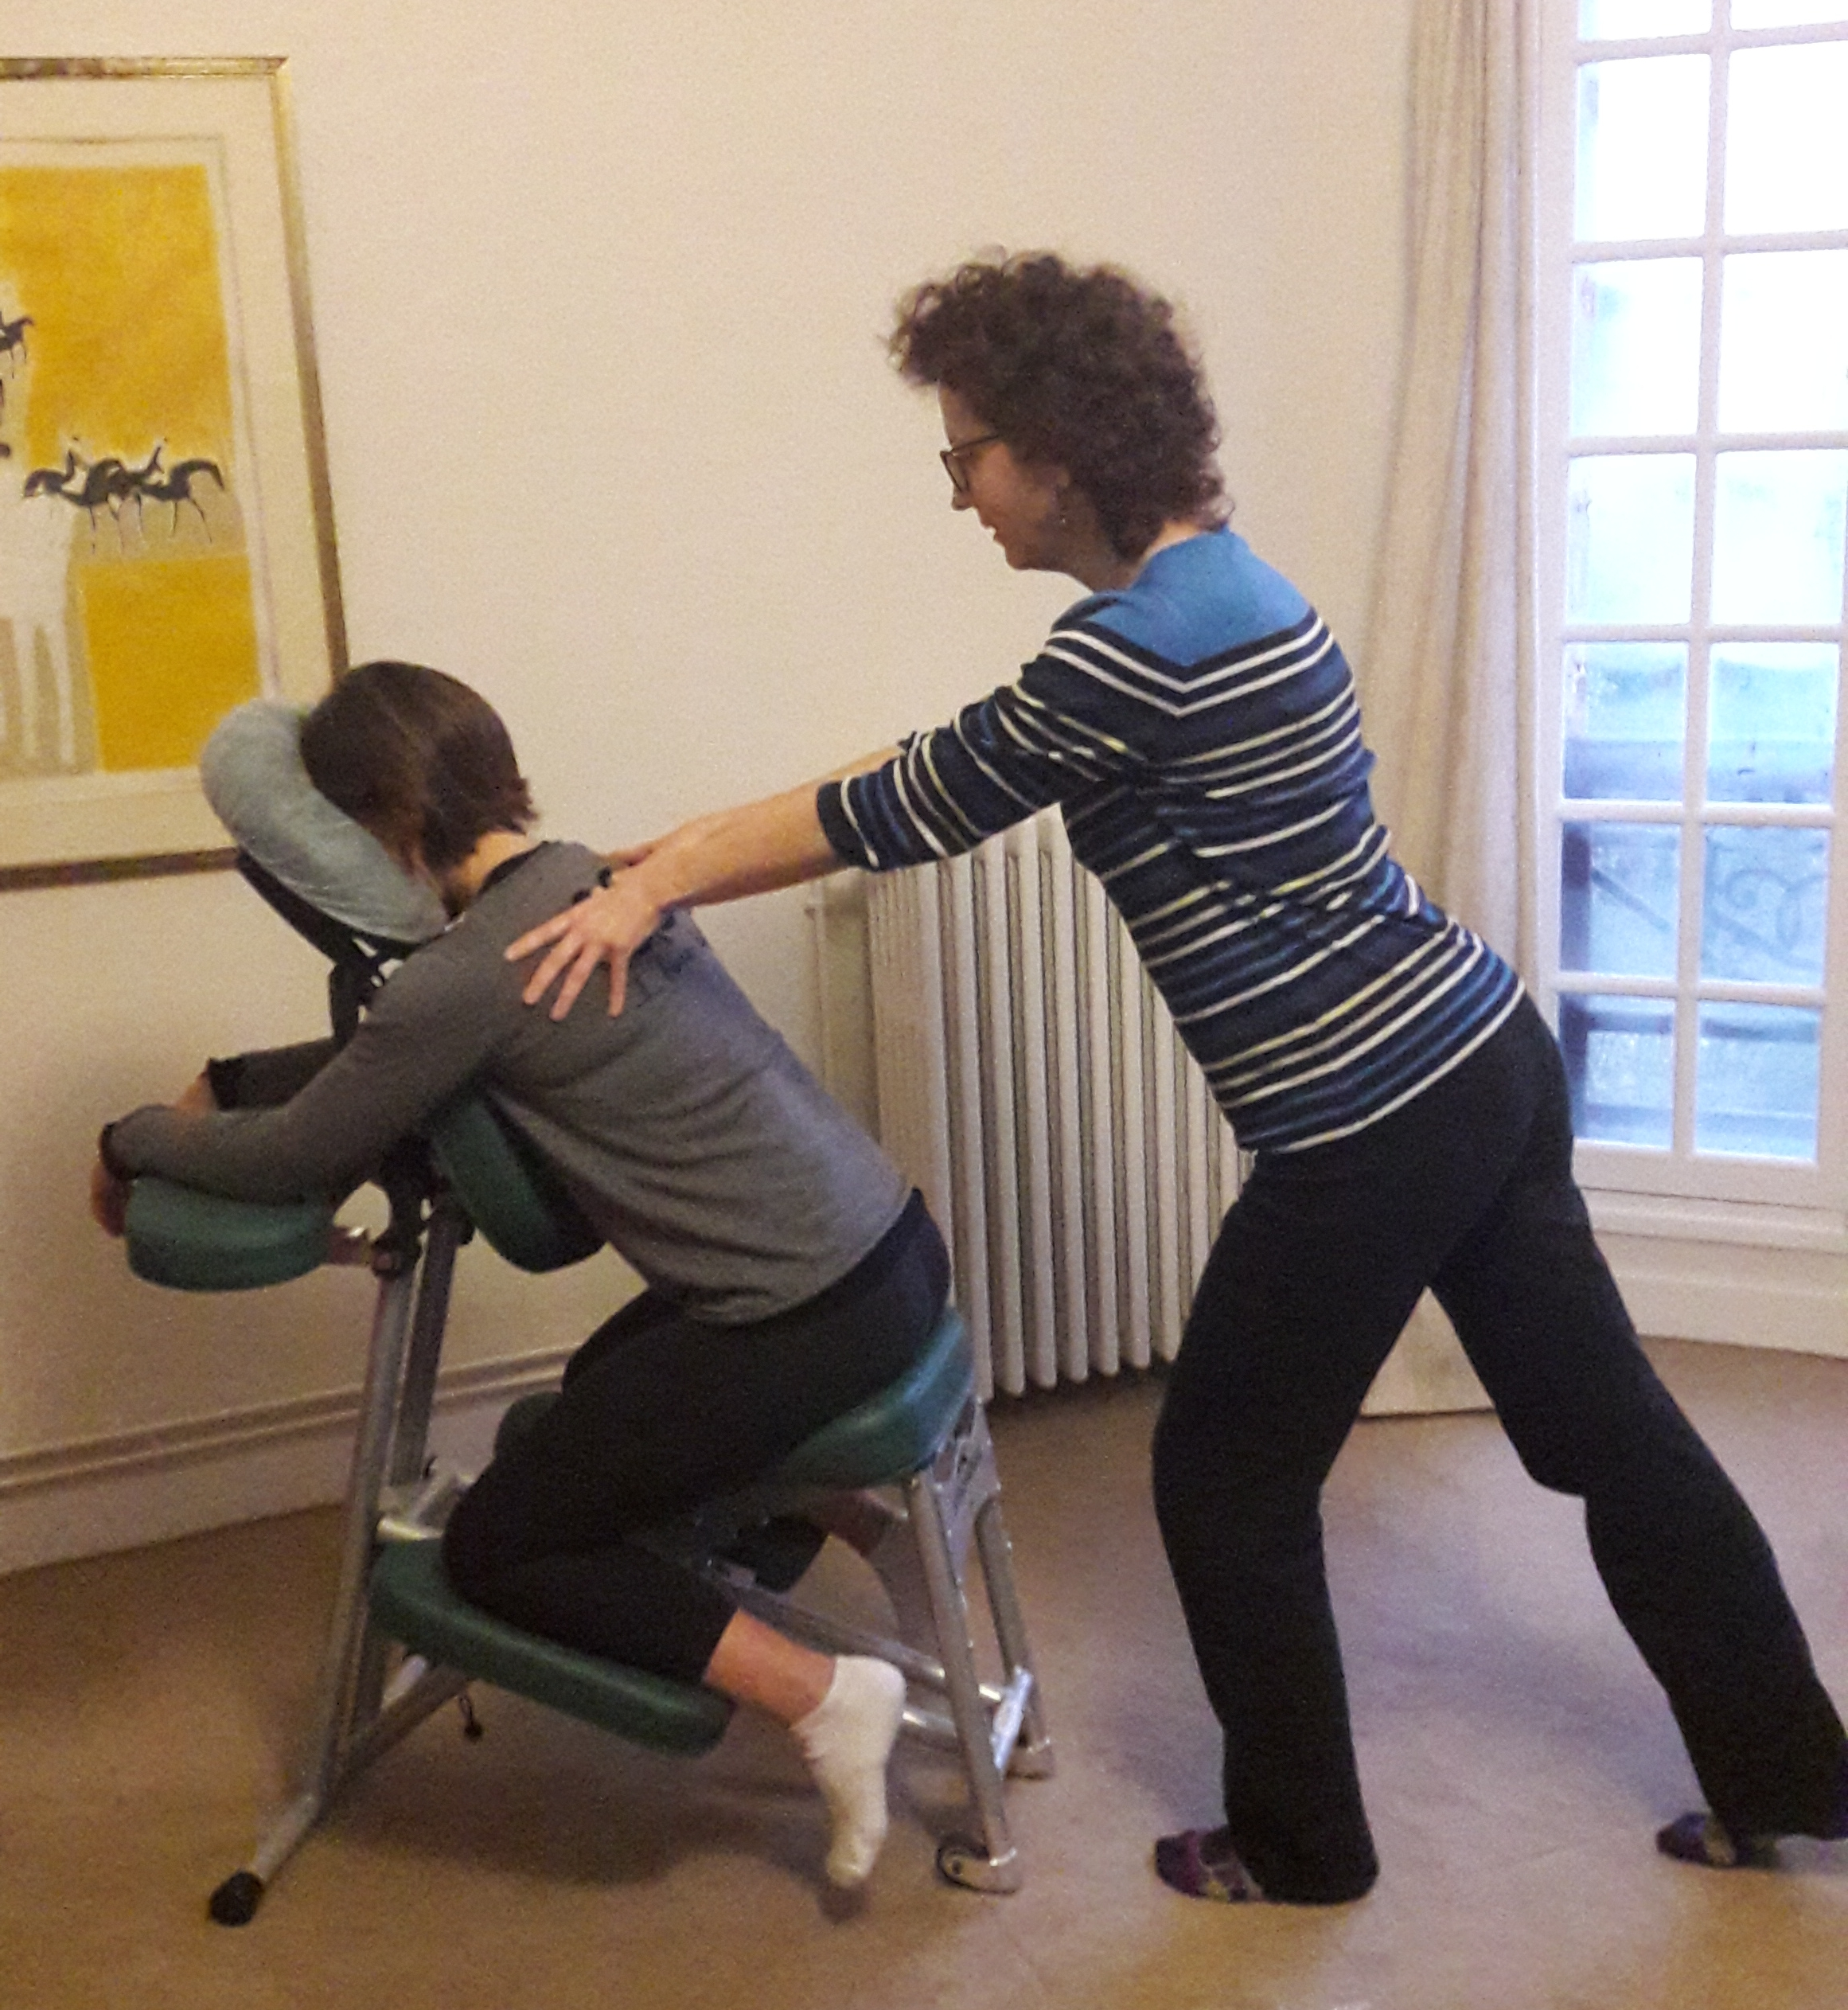 Formation au situp massage à l'iffp